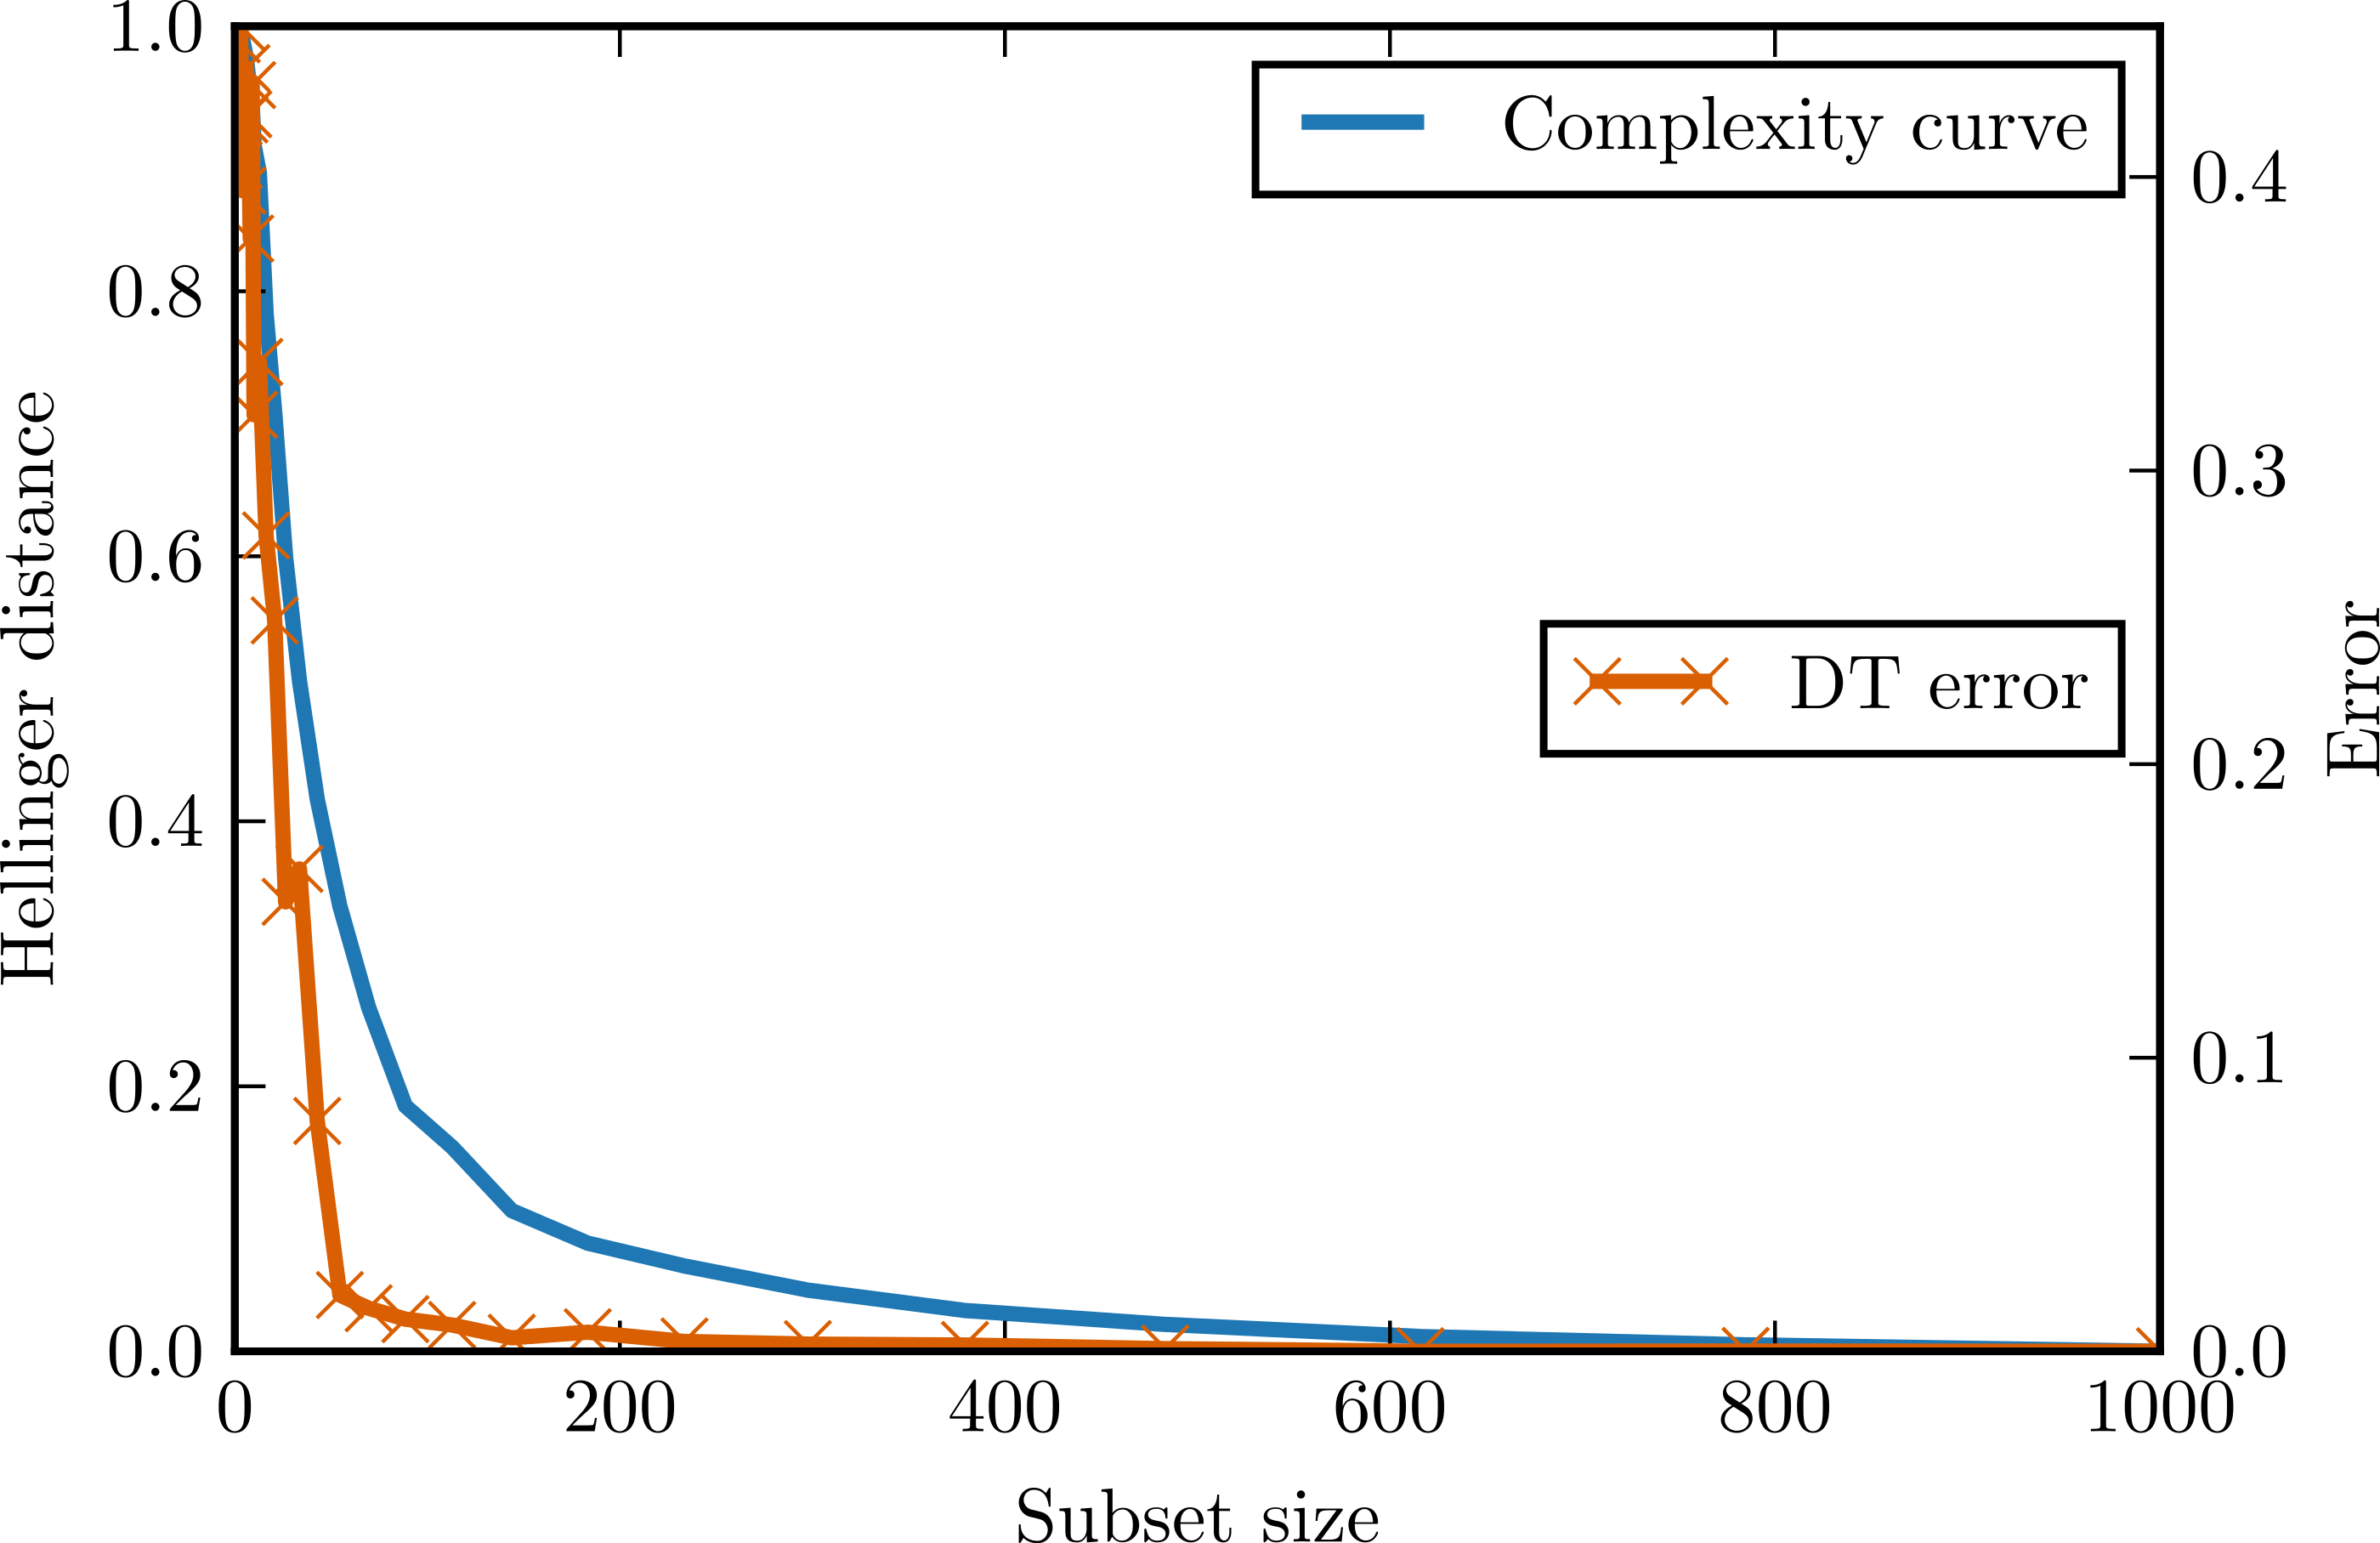 Complexity curve: a graphical measure of data complexity and